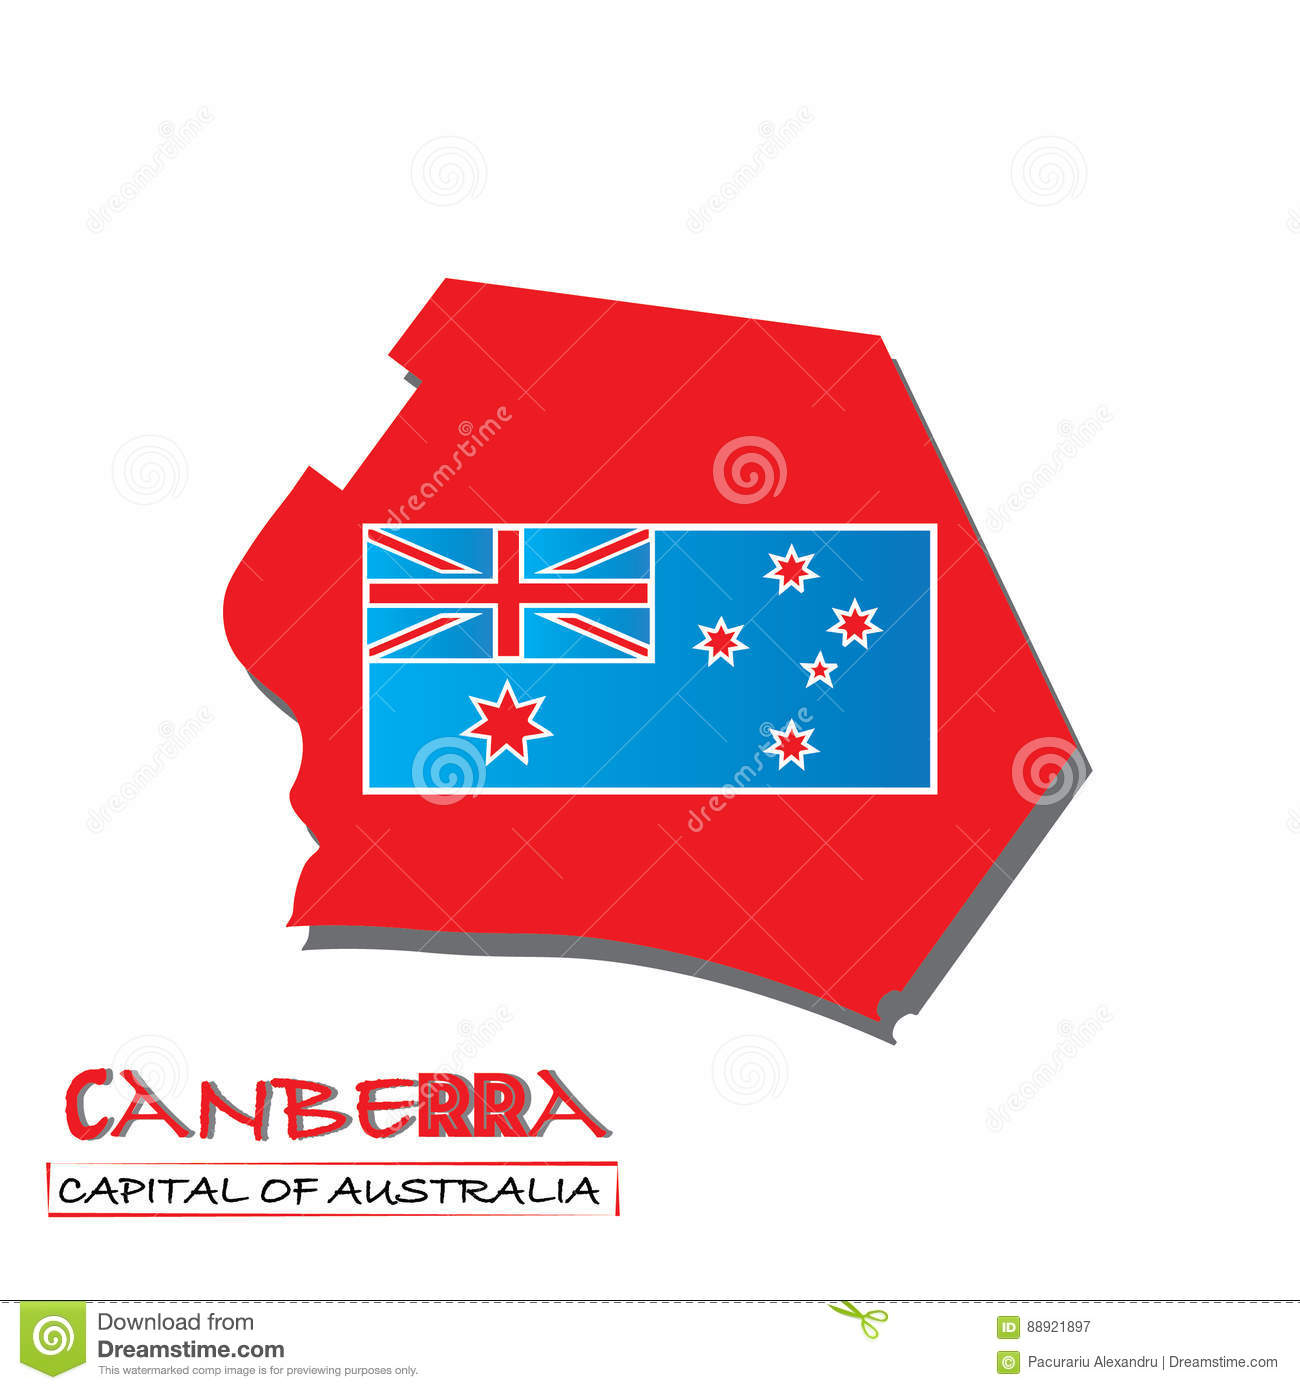 Australia Map Canberra.Canberra Capital Of Australia Map Vector Illustration Flag Of